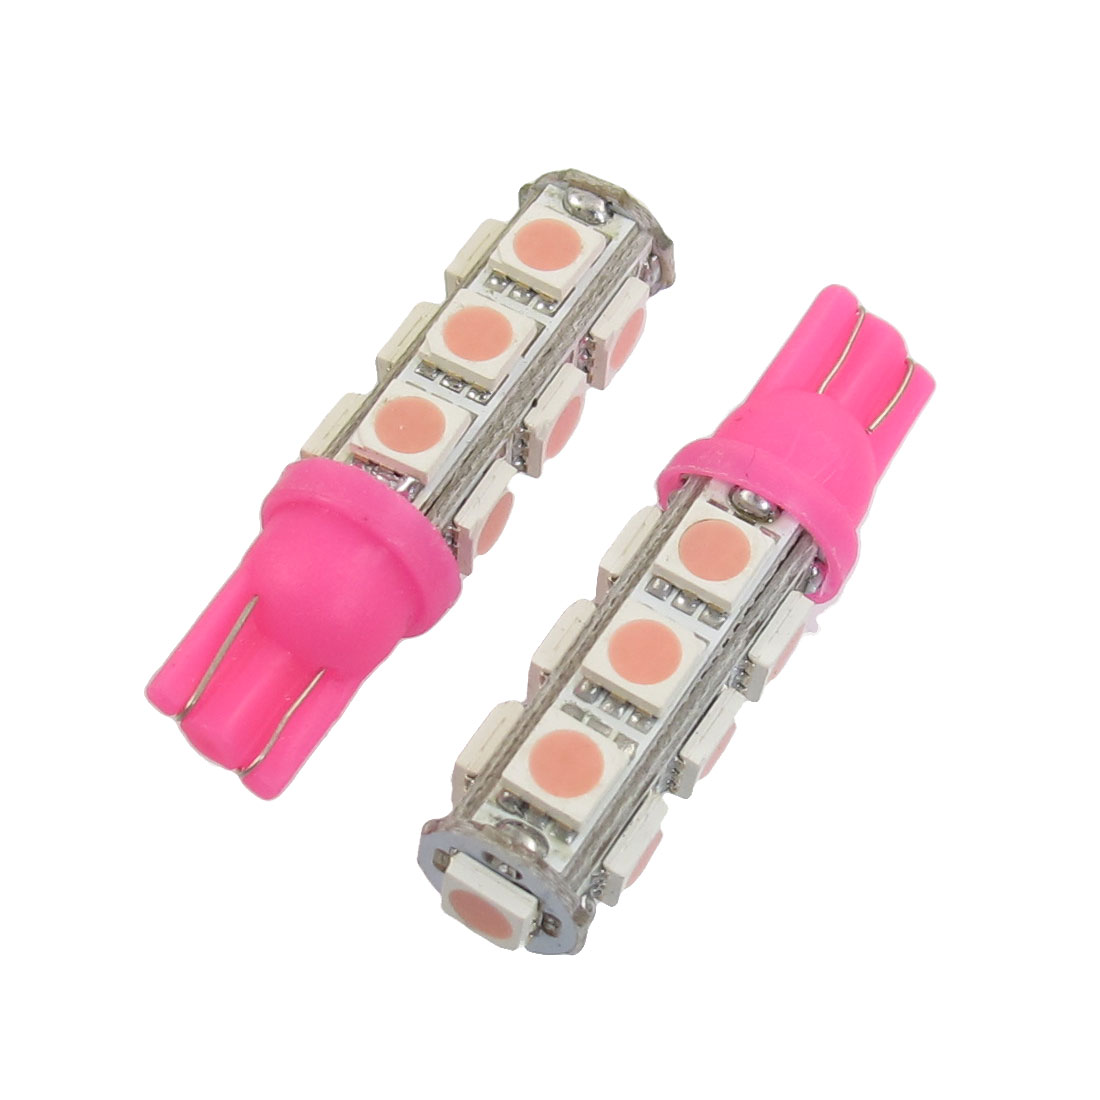 2-Pcs-T10-194-168-W5W-Pink-5050-SMD-13-LED-Car-Light-Bulb-lamp-12V